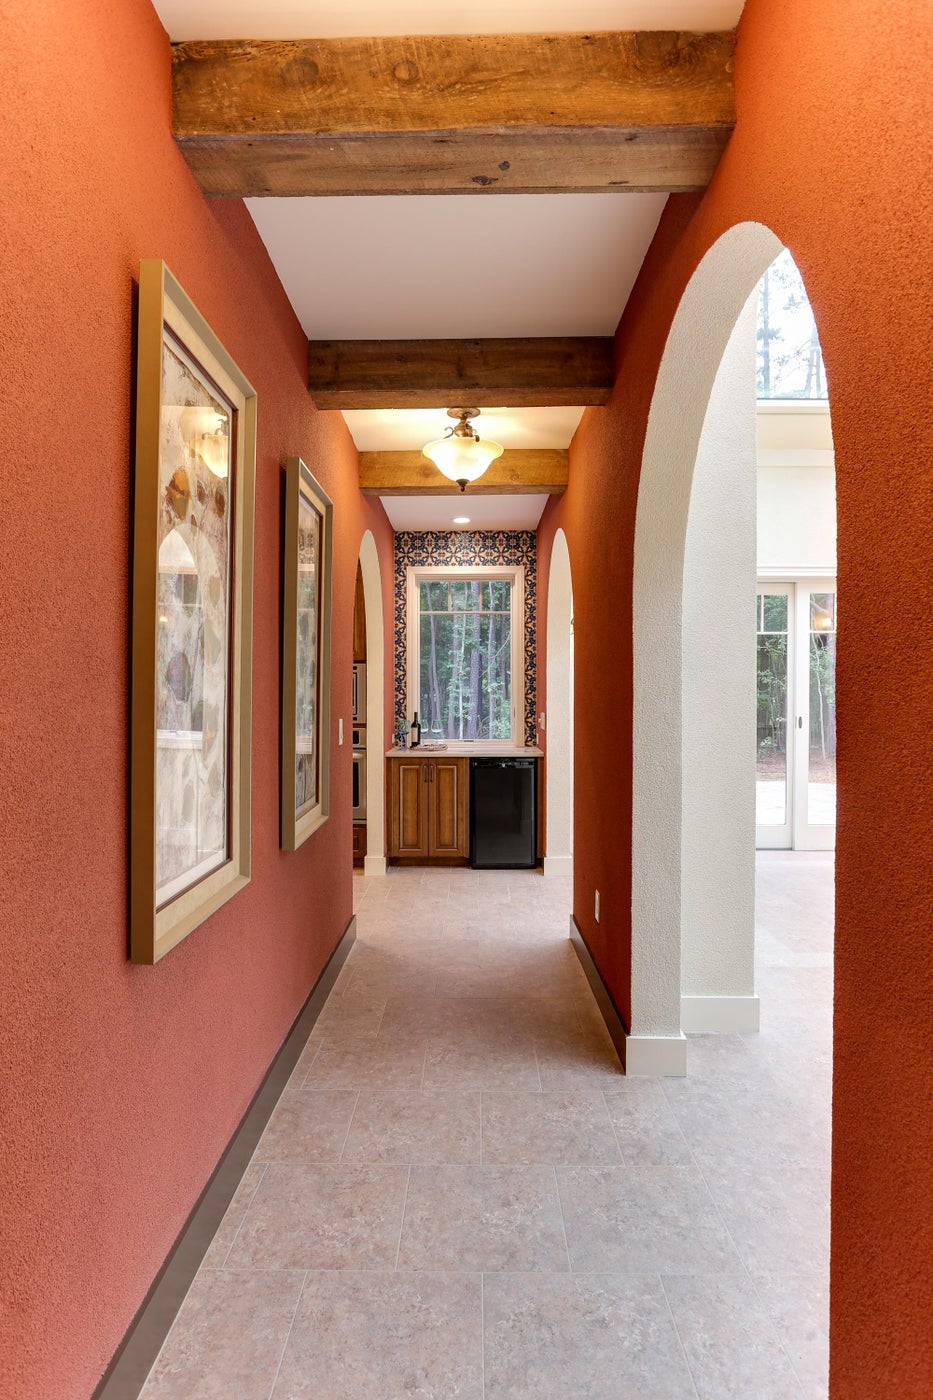 Spanish Hacienda style stucco walls, reclaimed wood beams, and colorful tile.